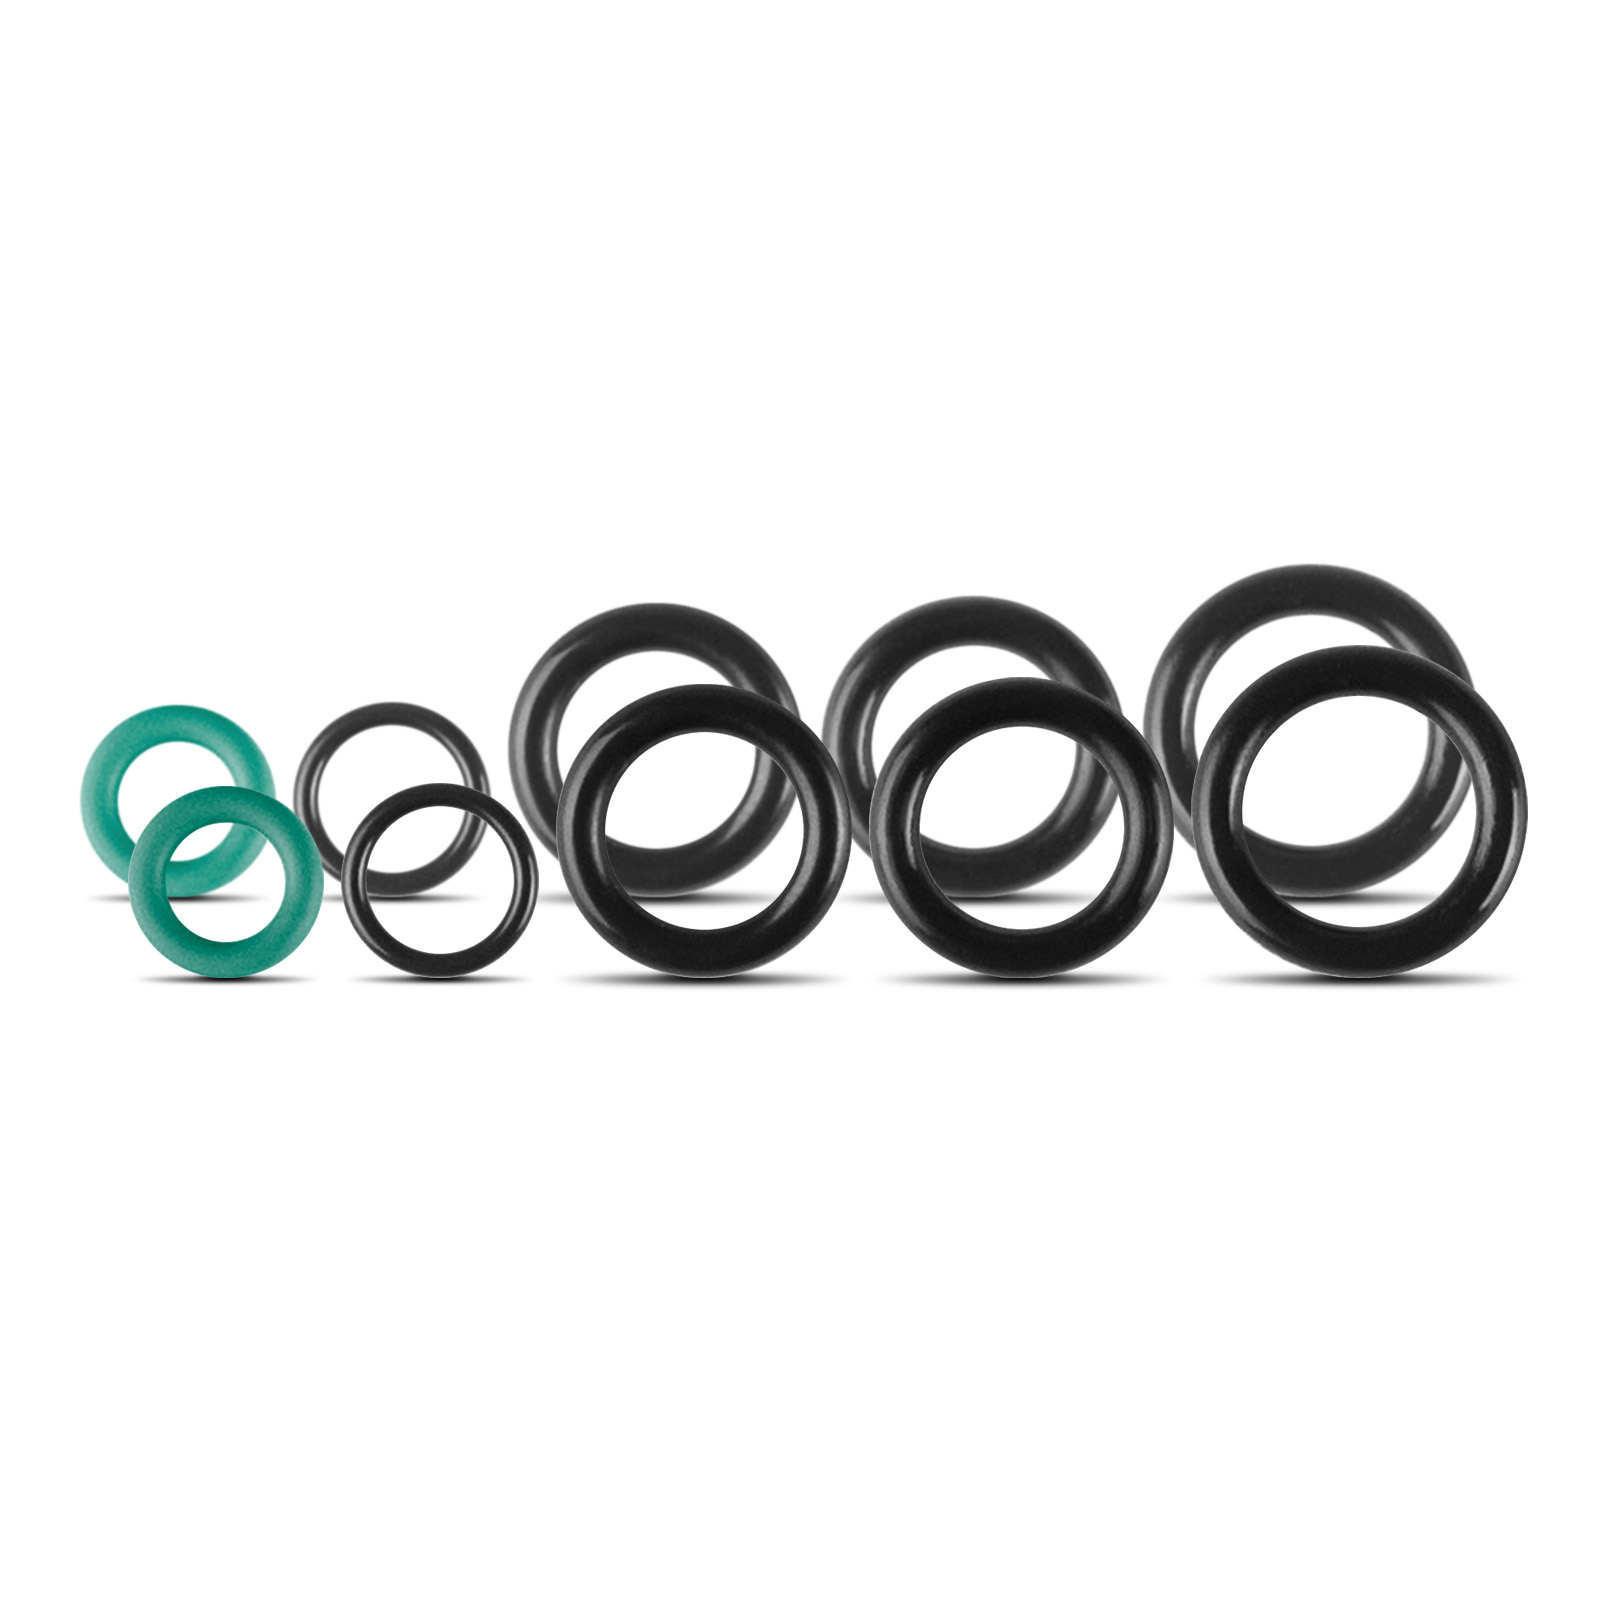 Gerni O-Ring O Ring ORing Kit - Group Hero